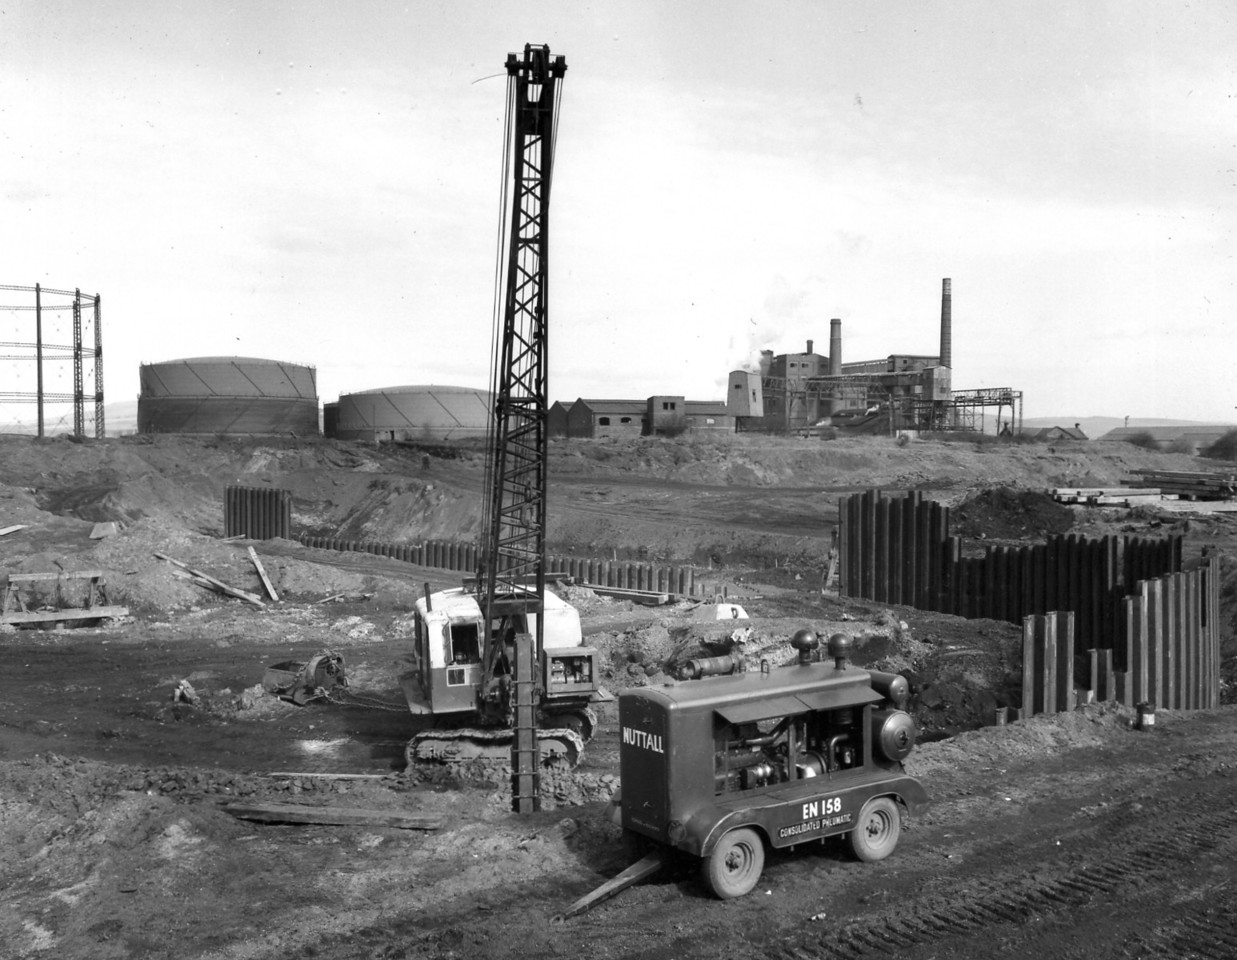 D015	Temporary piling & excavation at east side of dock  21/3/1962